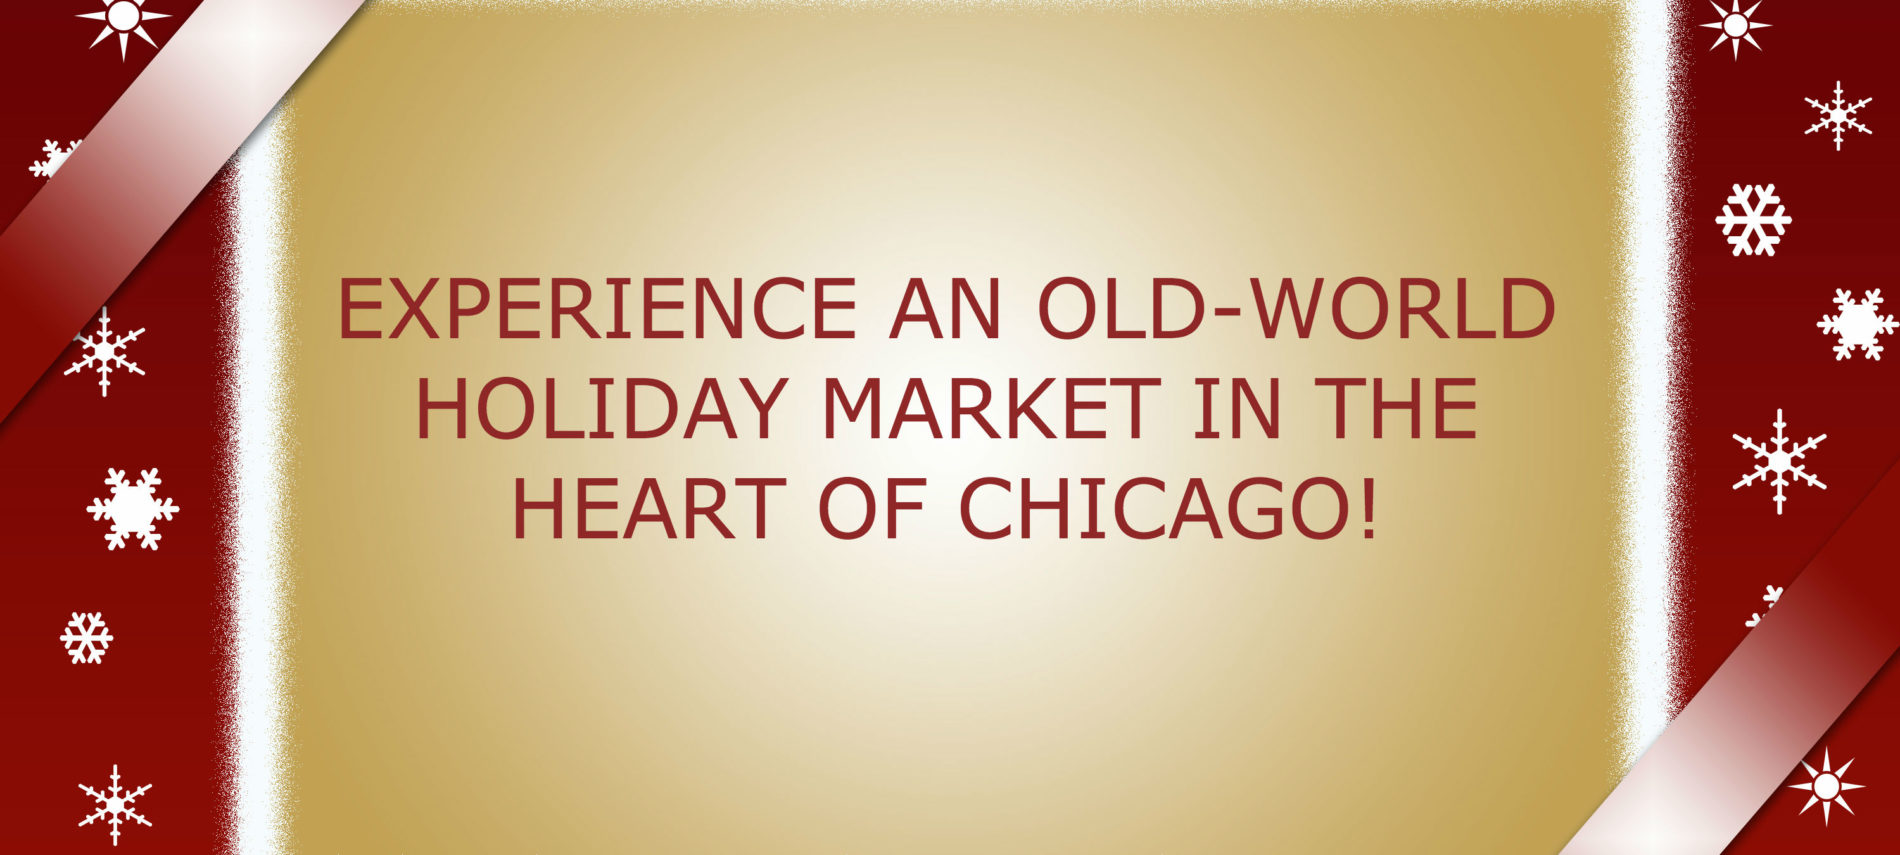 "HOLIDAY PHOTO FRAME WITH TYPE INSIDE SAYING: ""EXPERIENCE AN ILD WORLD HOLIDAY MARKET IN THE HEART OF CHICAGO."""